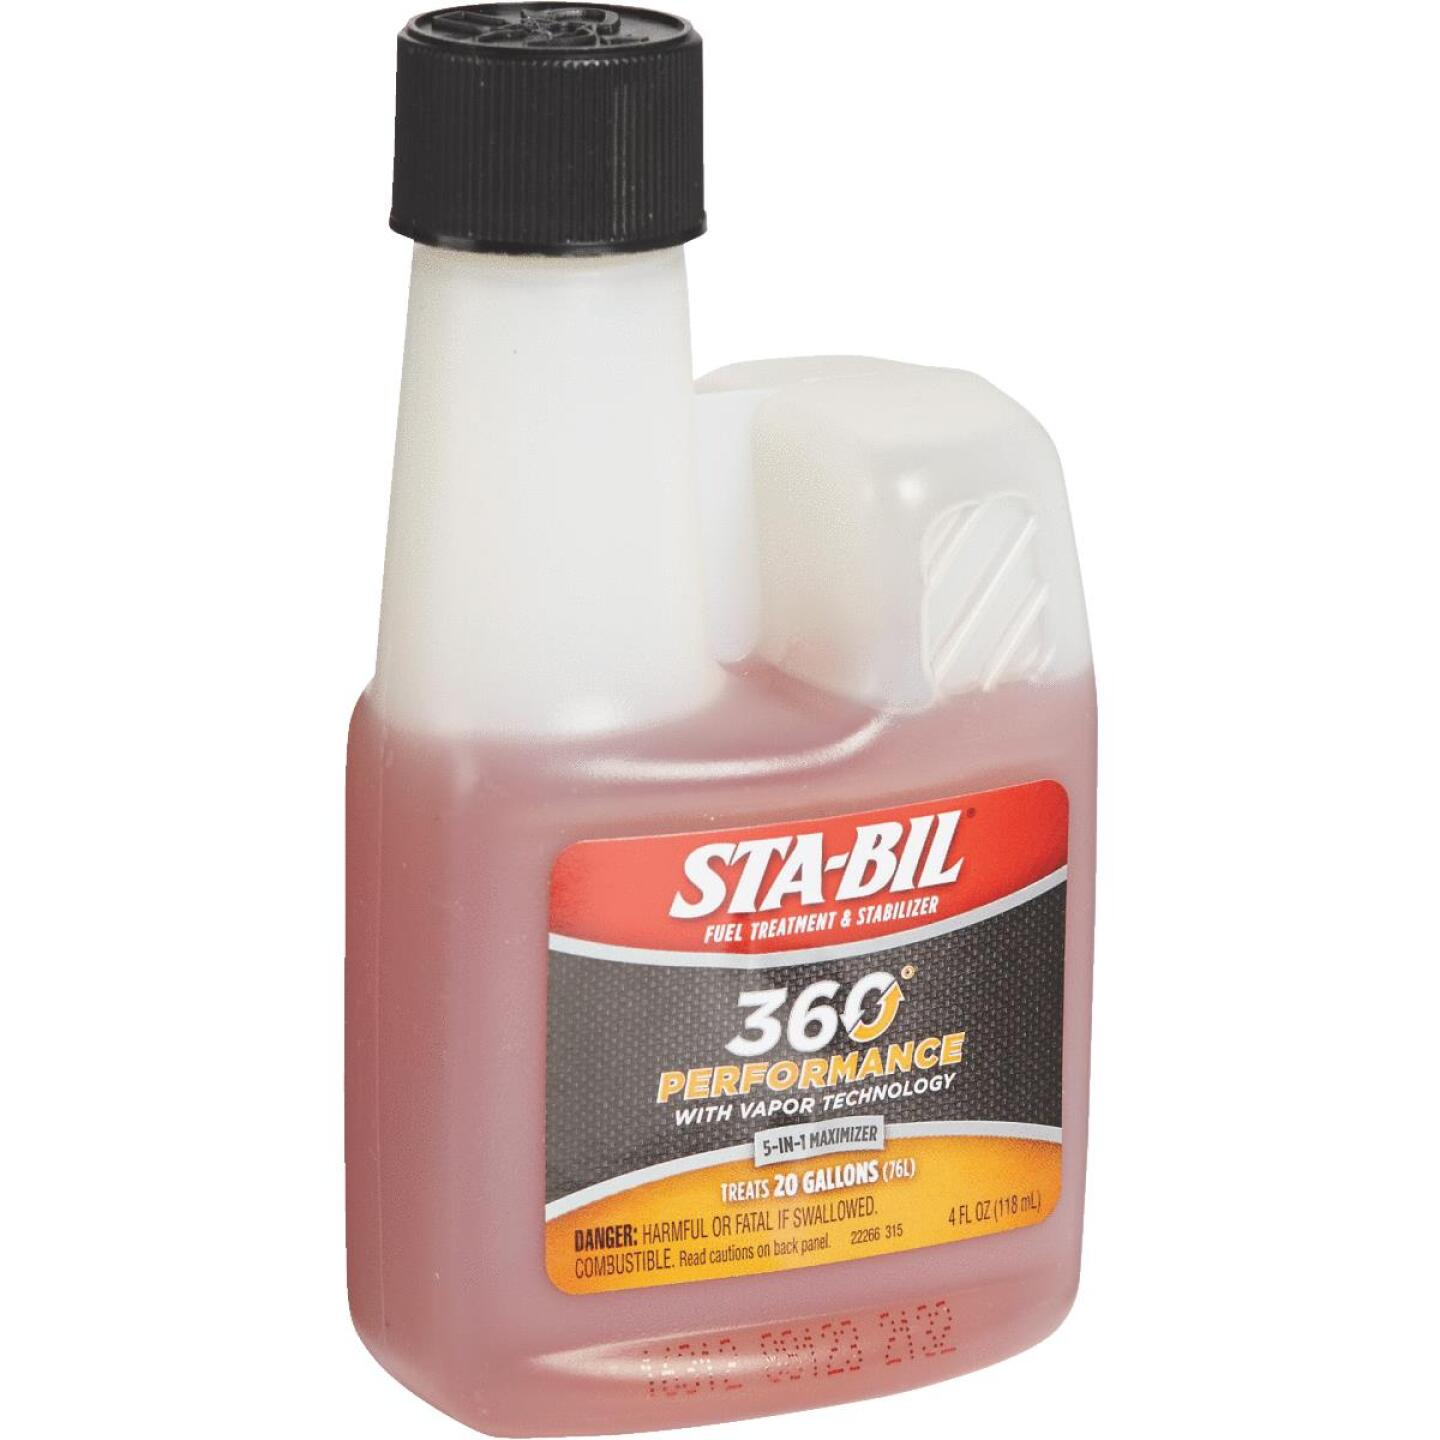 Sta-Bil 4 Fl. Oz. Ethanol Gas Treatment Image 2